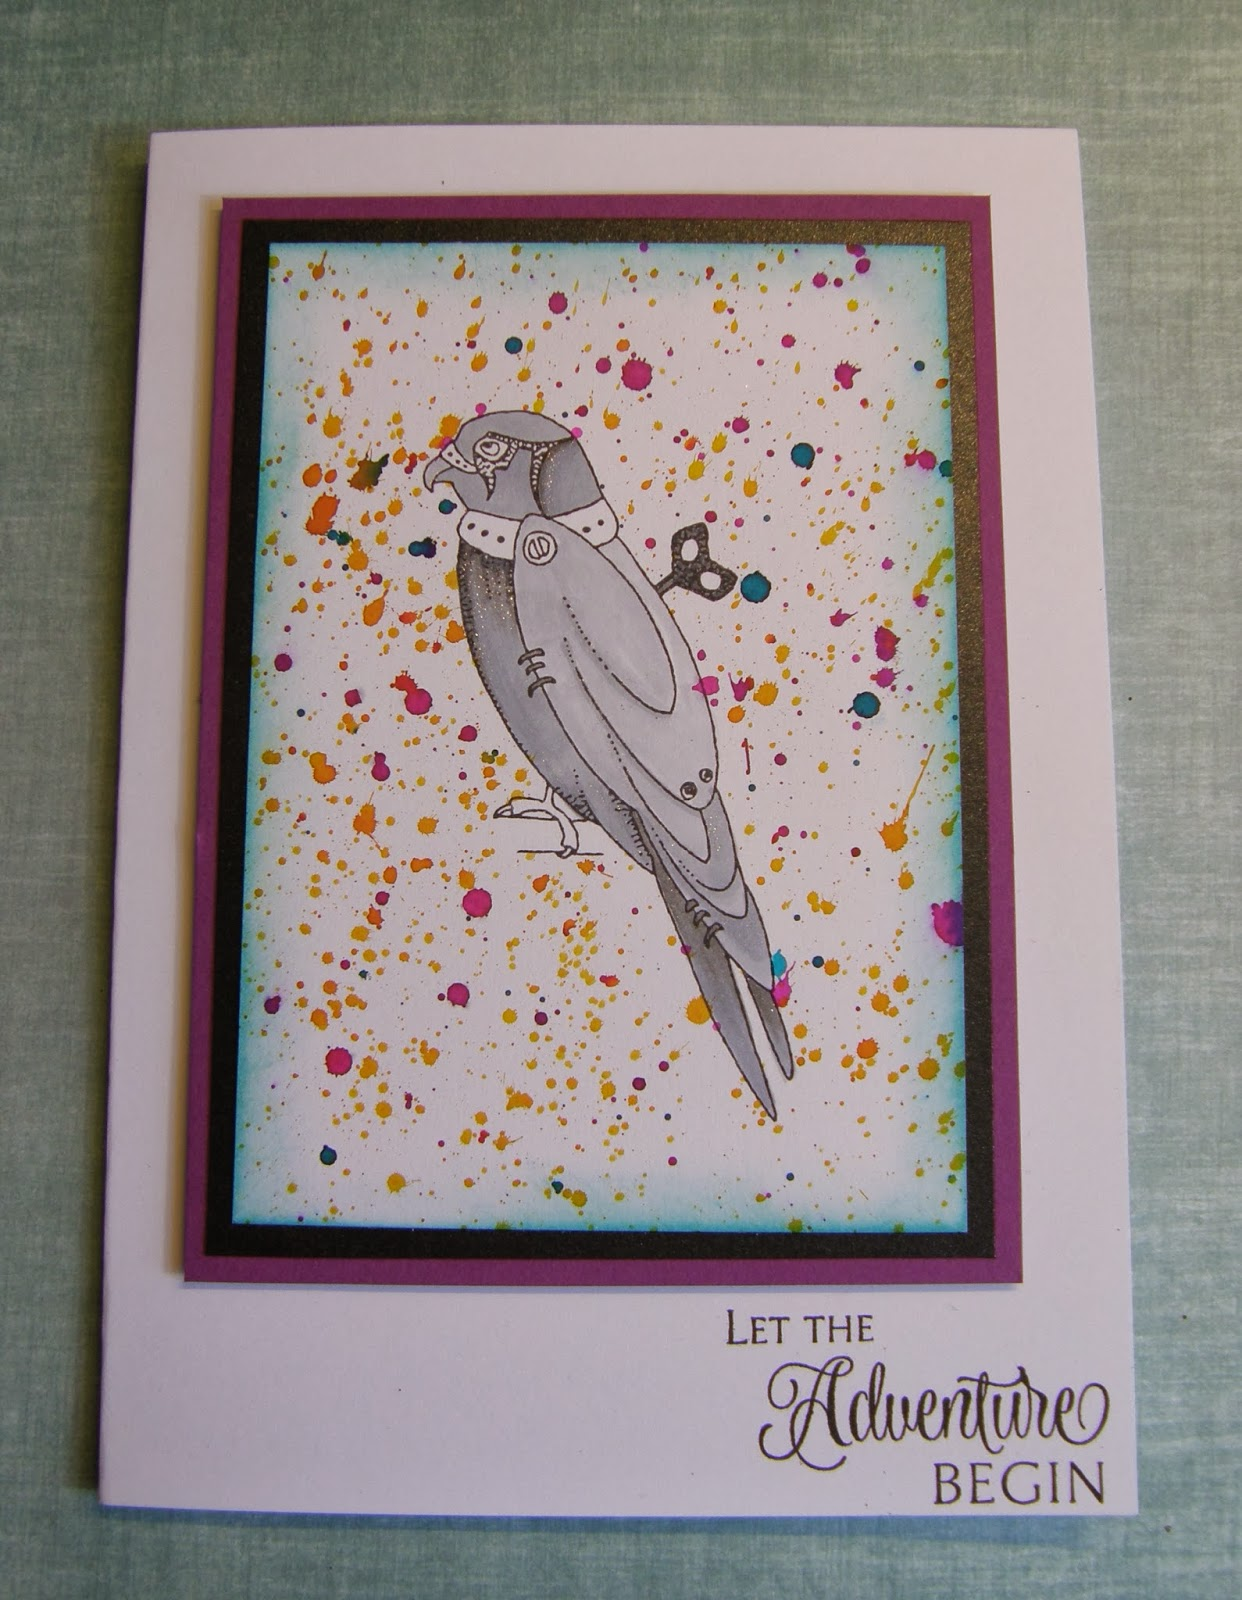 Chocolate Baroque Design Team Grey Parrot With Splattered